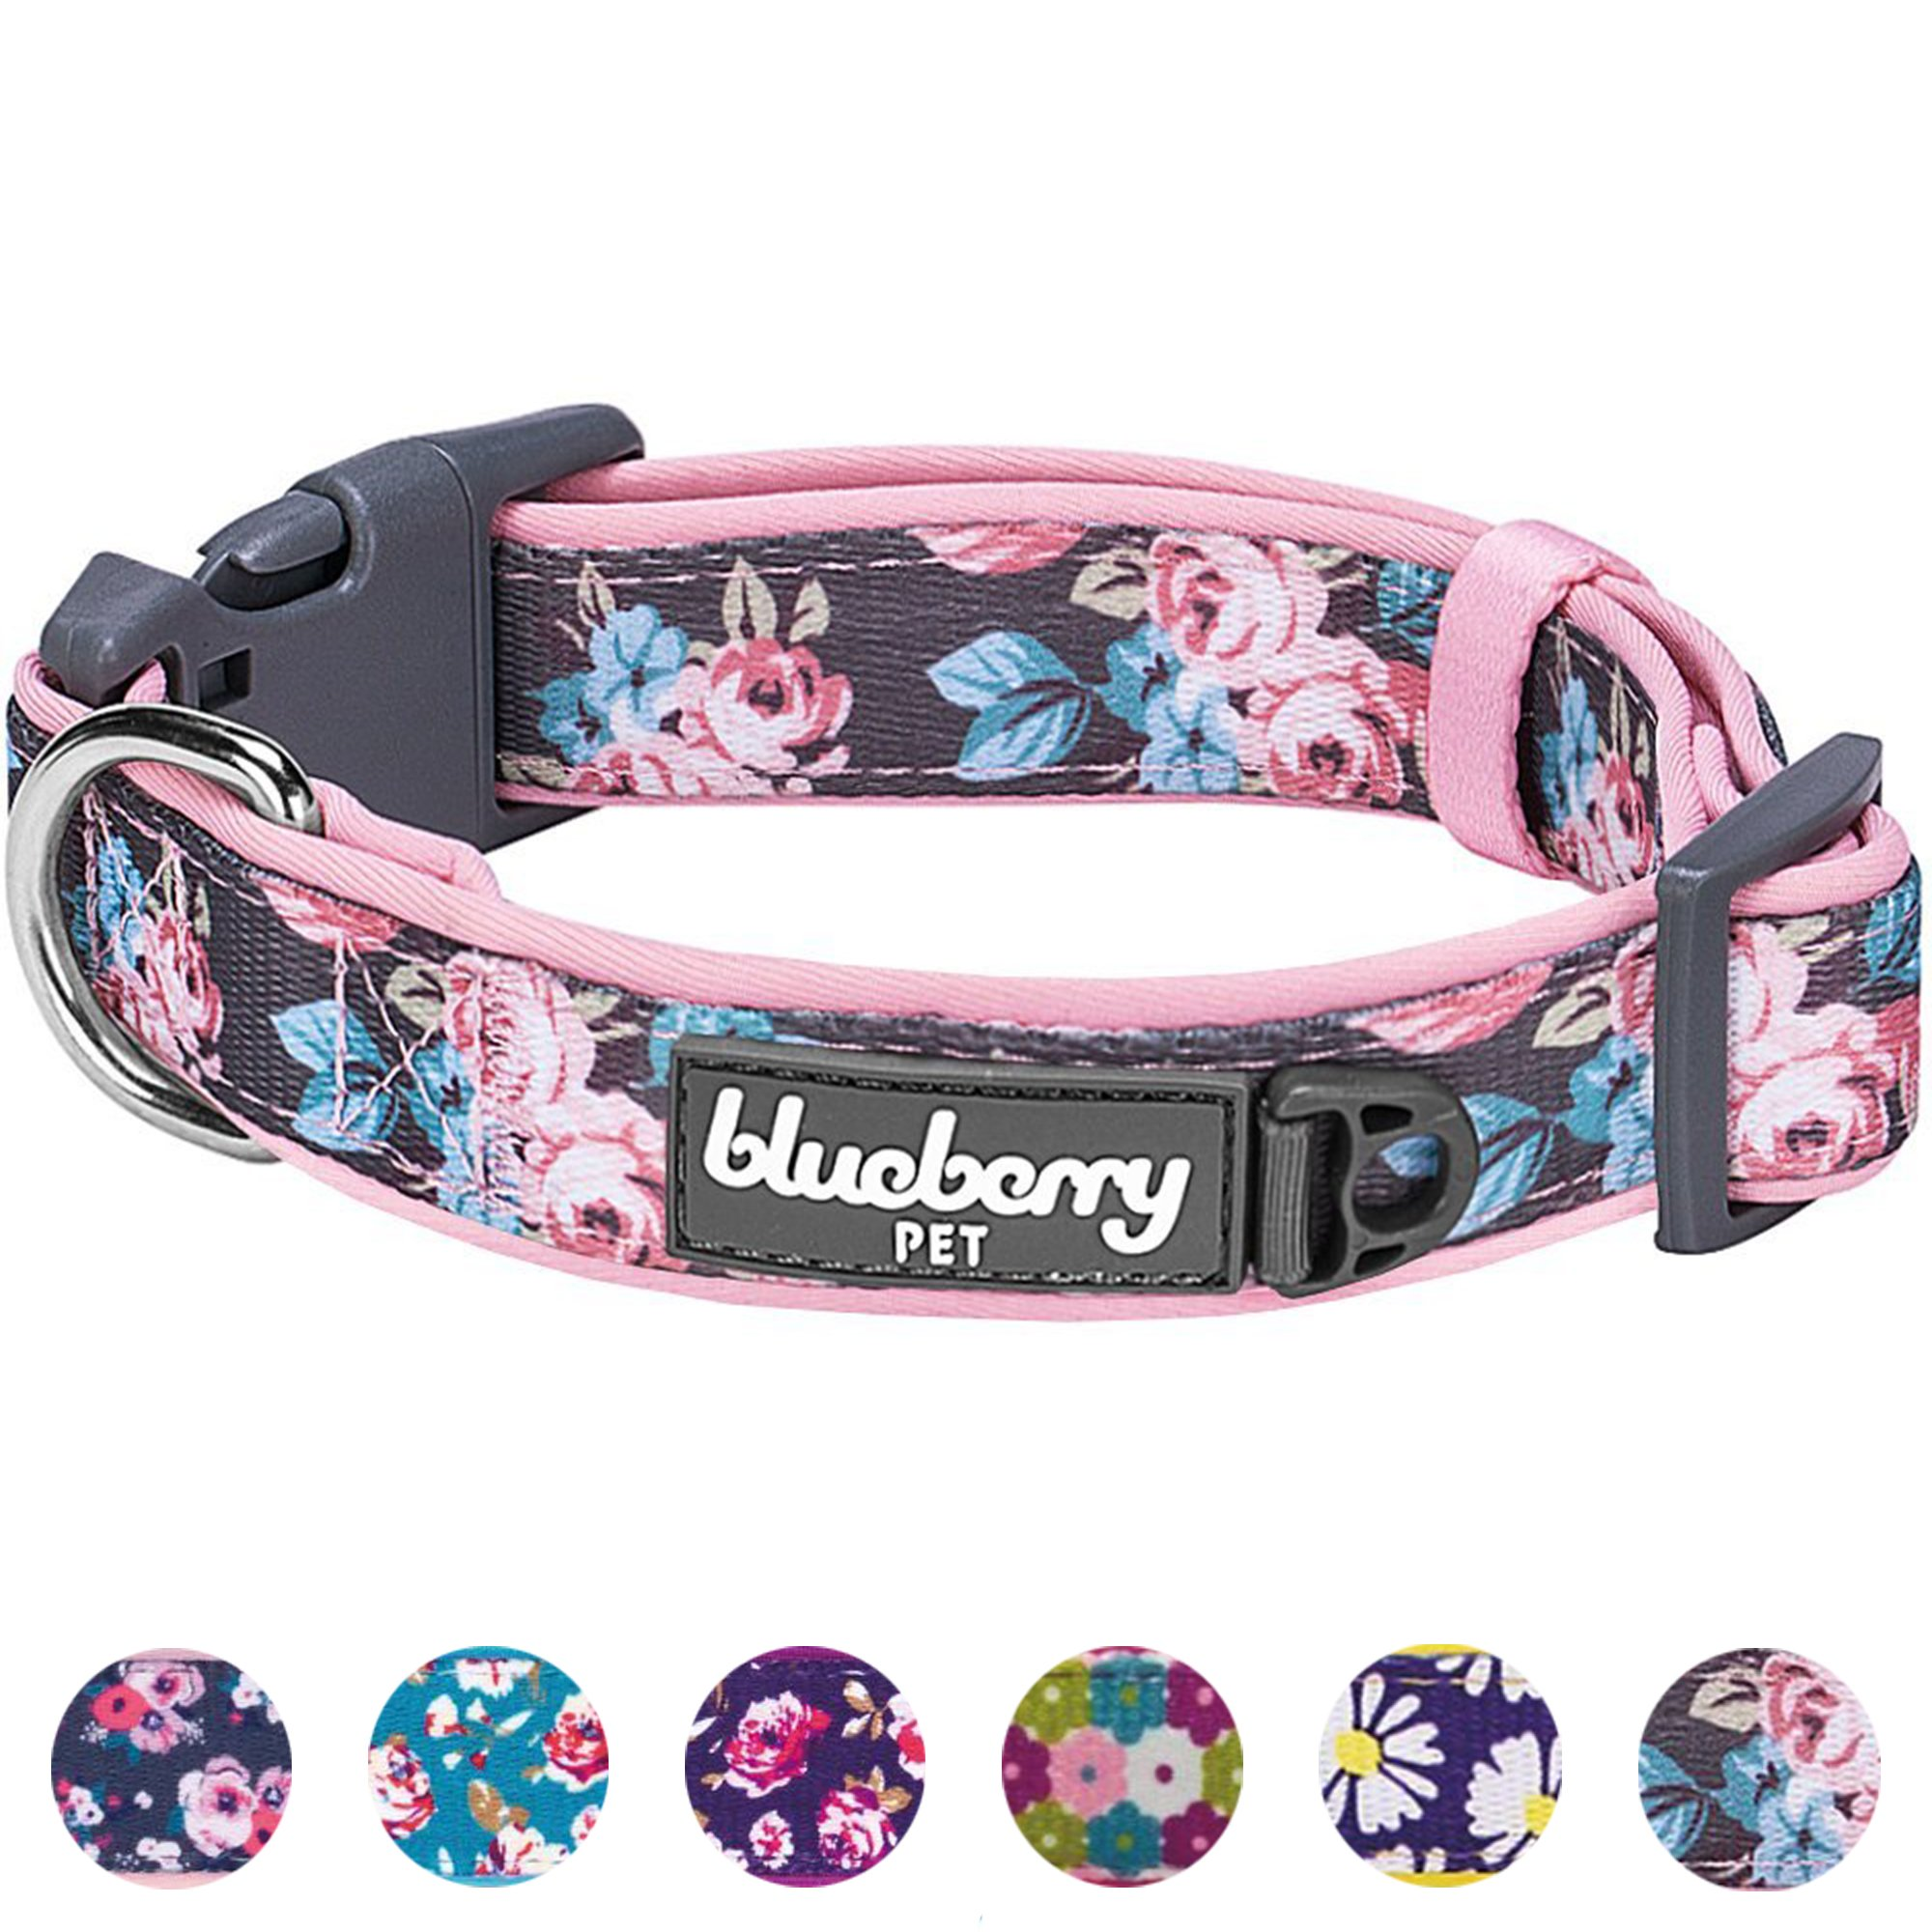 Blueberry Pet 6 Patterns Soft & Comfy Welcoming Spring Rose Flower Prints Girly Padded Dog Collar, Small, Neck 12''-16'', Adjustable Collars for Dogs